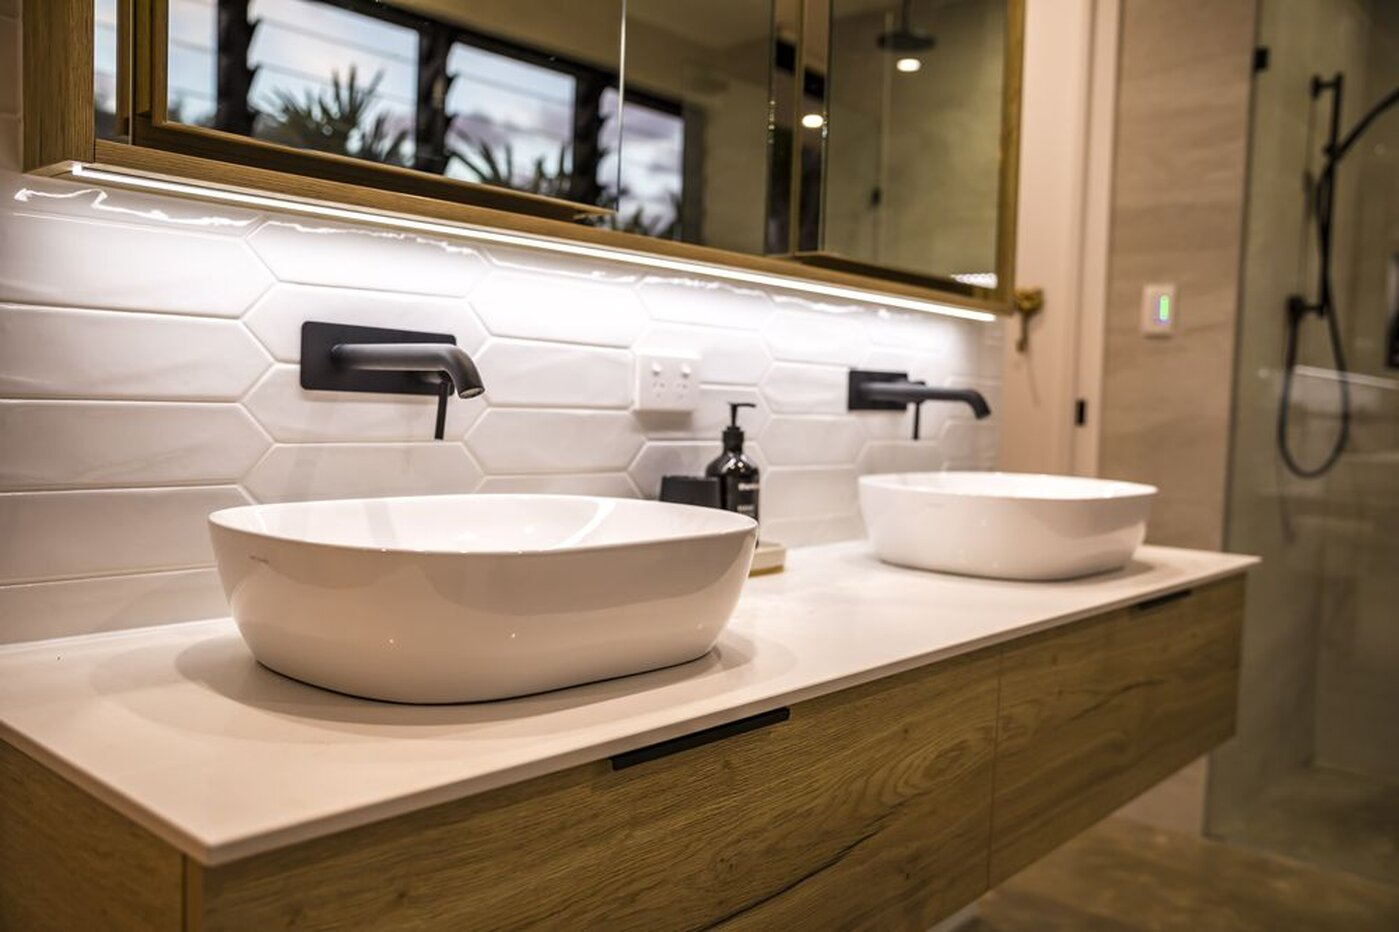 New Bathroom - Twin basins in white with black taps